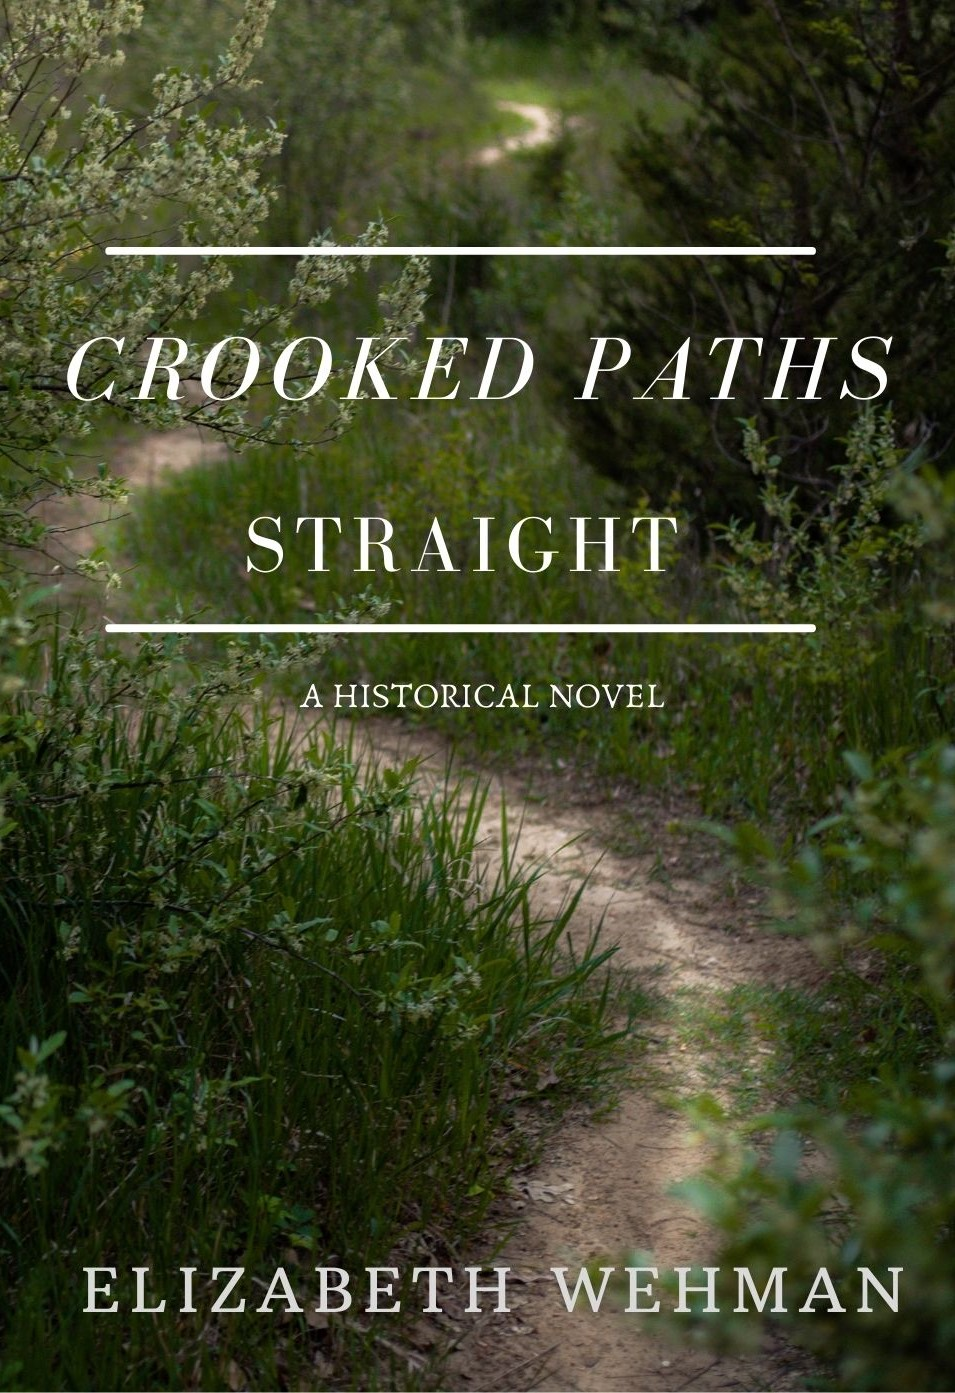 Crooked-Paths-Straight-Front-Cover-Copy-2